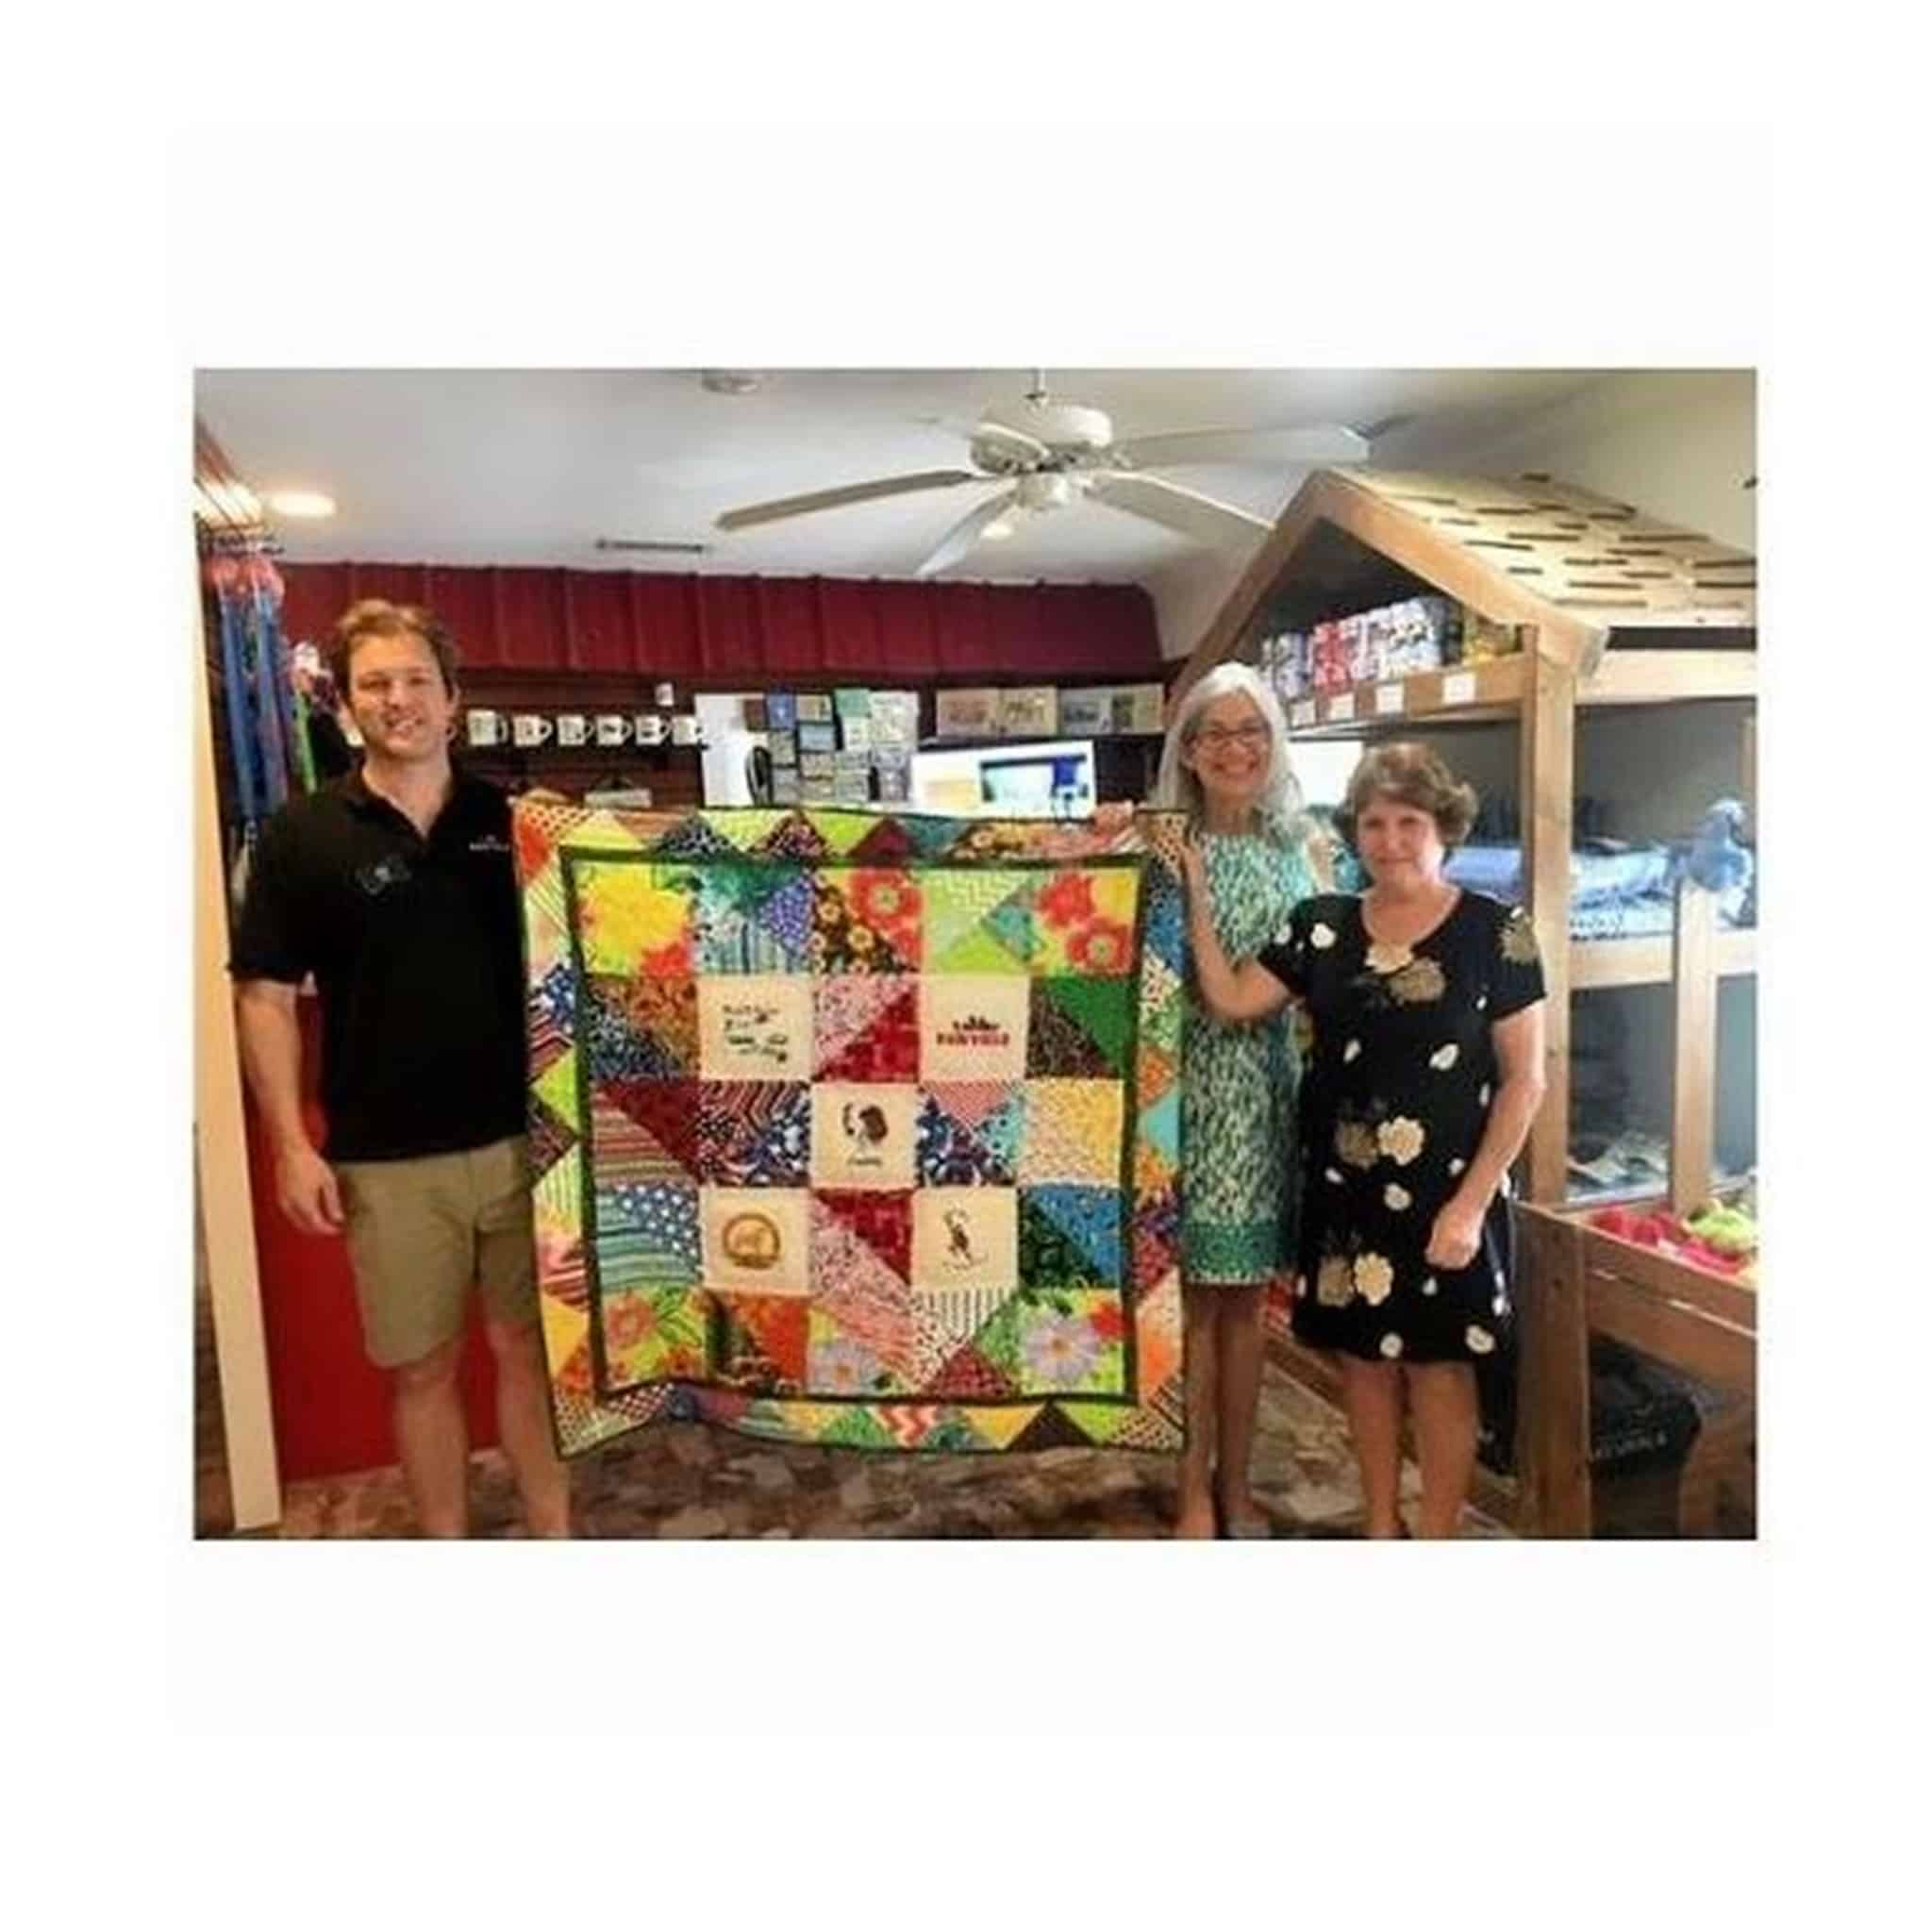 Celebrating presenting Cuddy's Pawville Quilt today